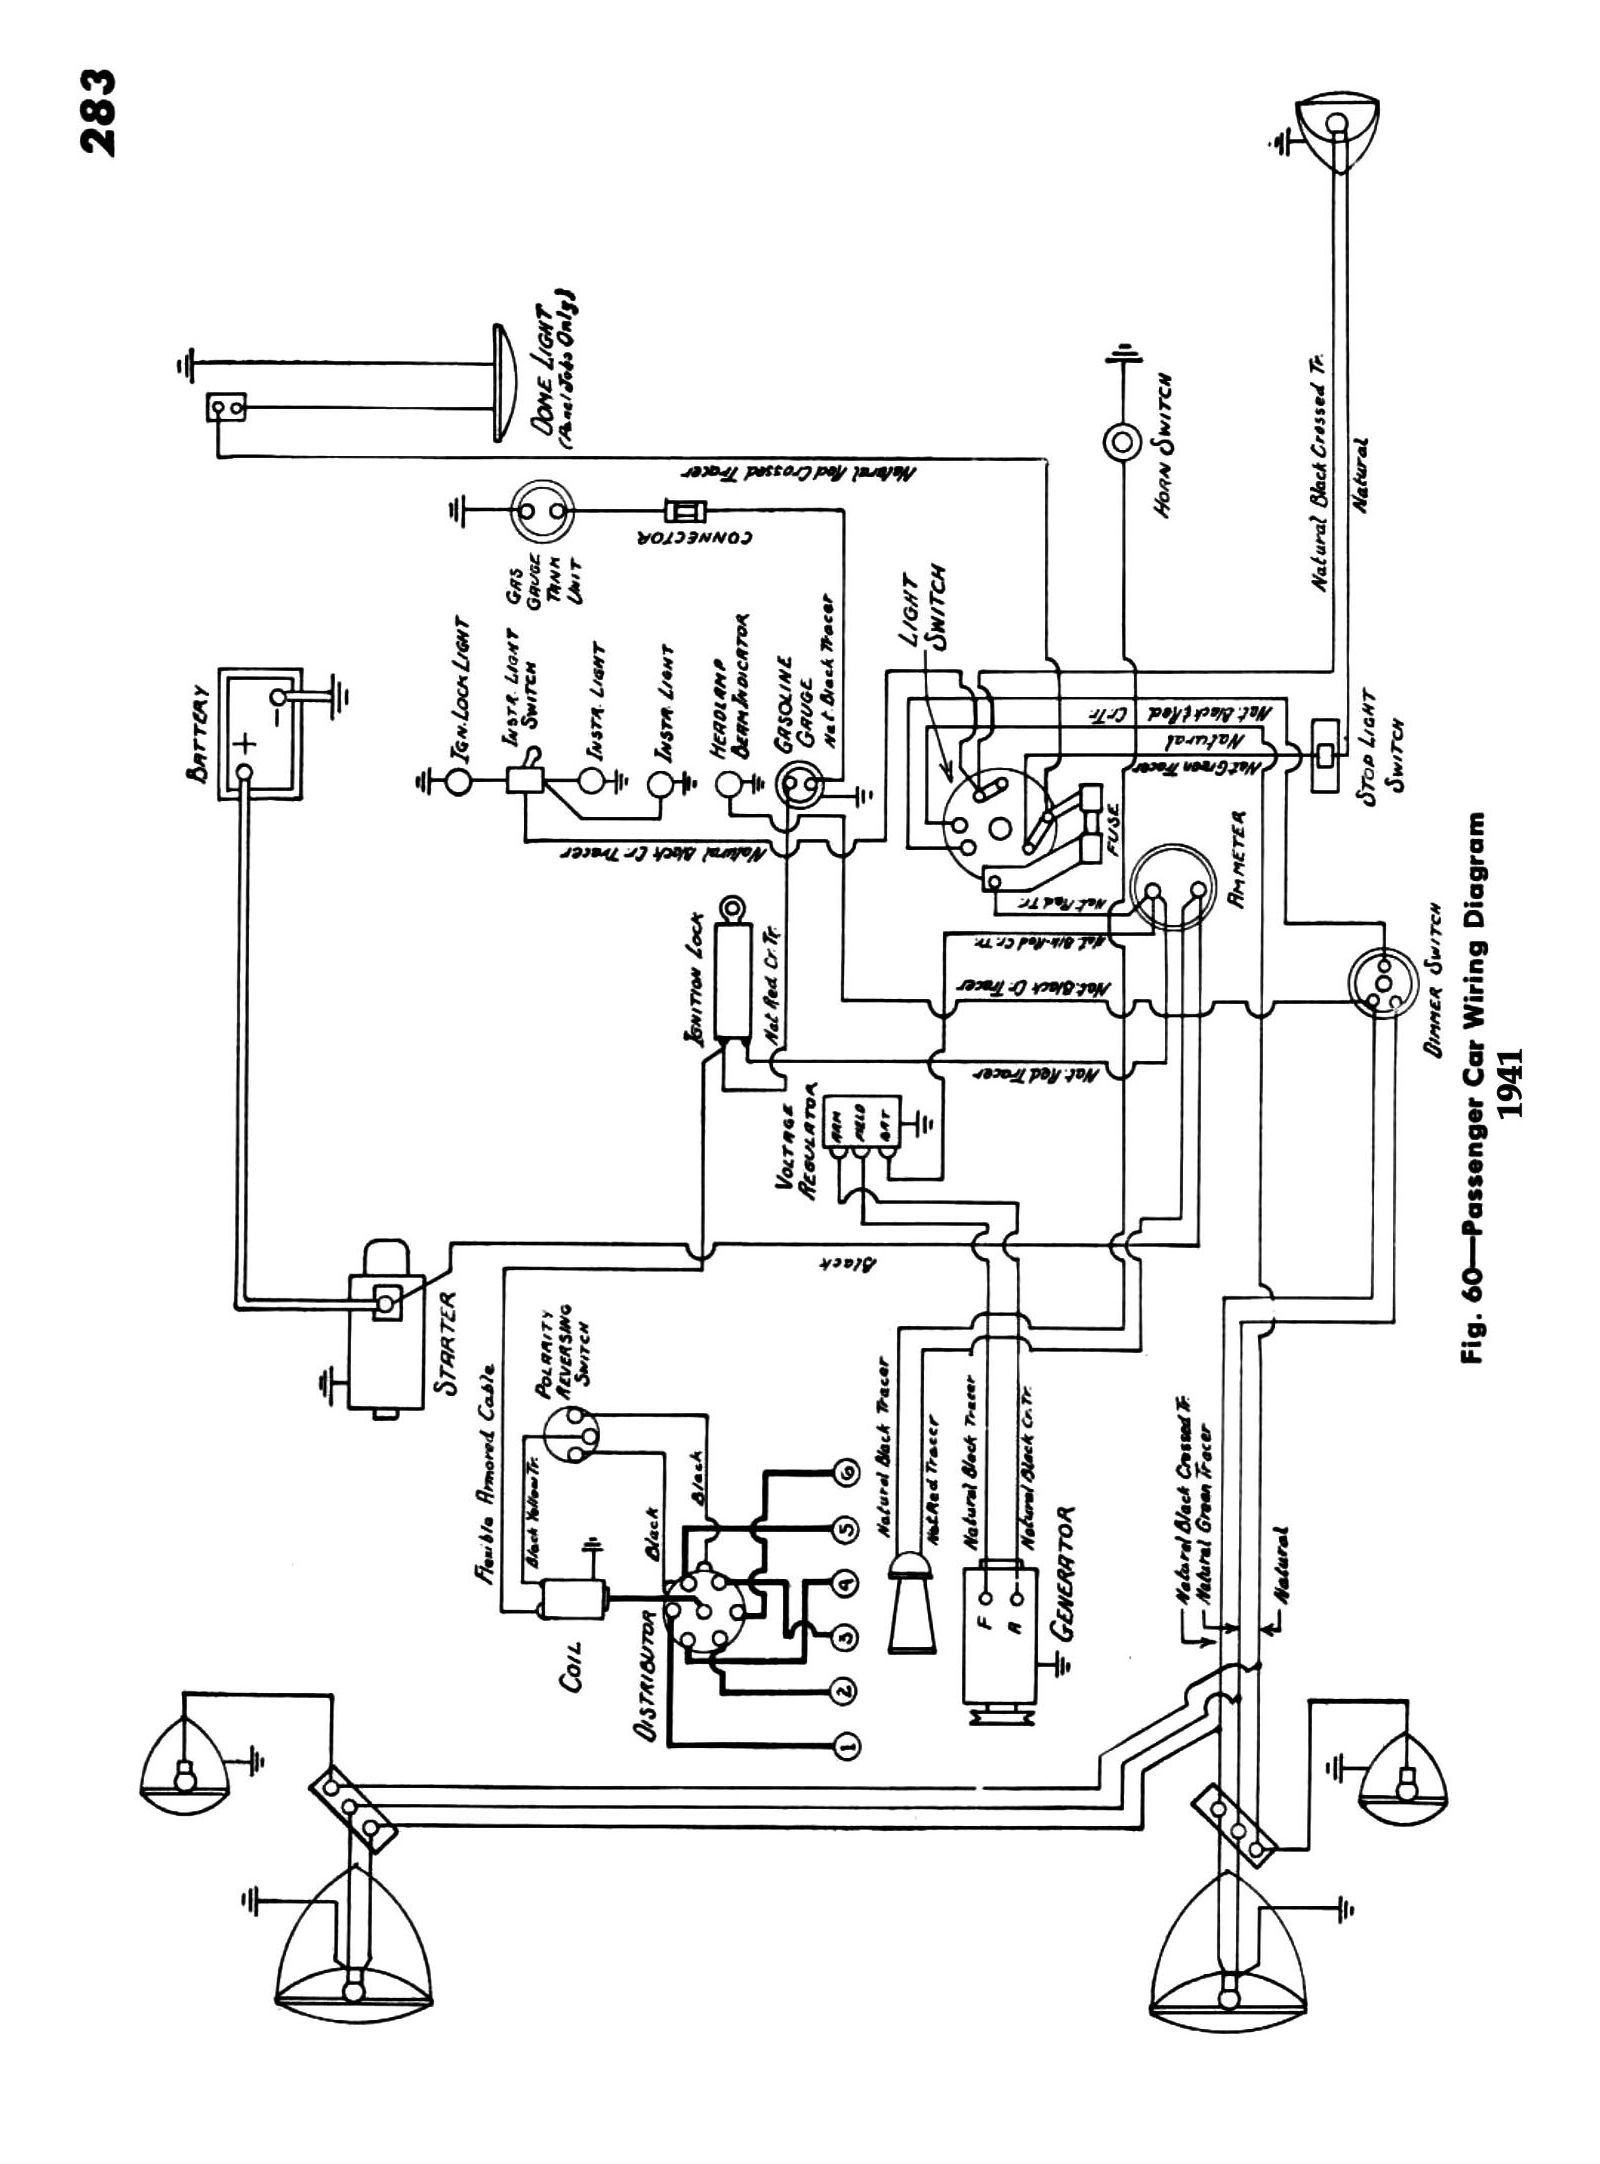 Car Ignition Circuit Diagram Chevy Wiring Diagrams Of Car Ignition Circuit Diagram